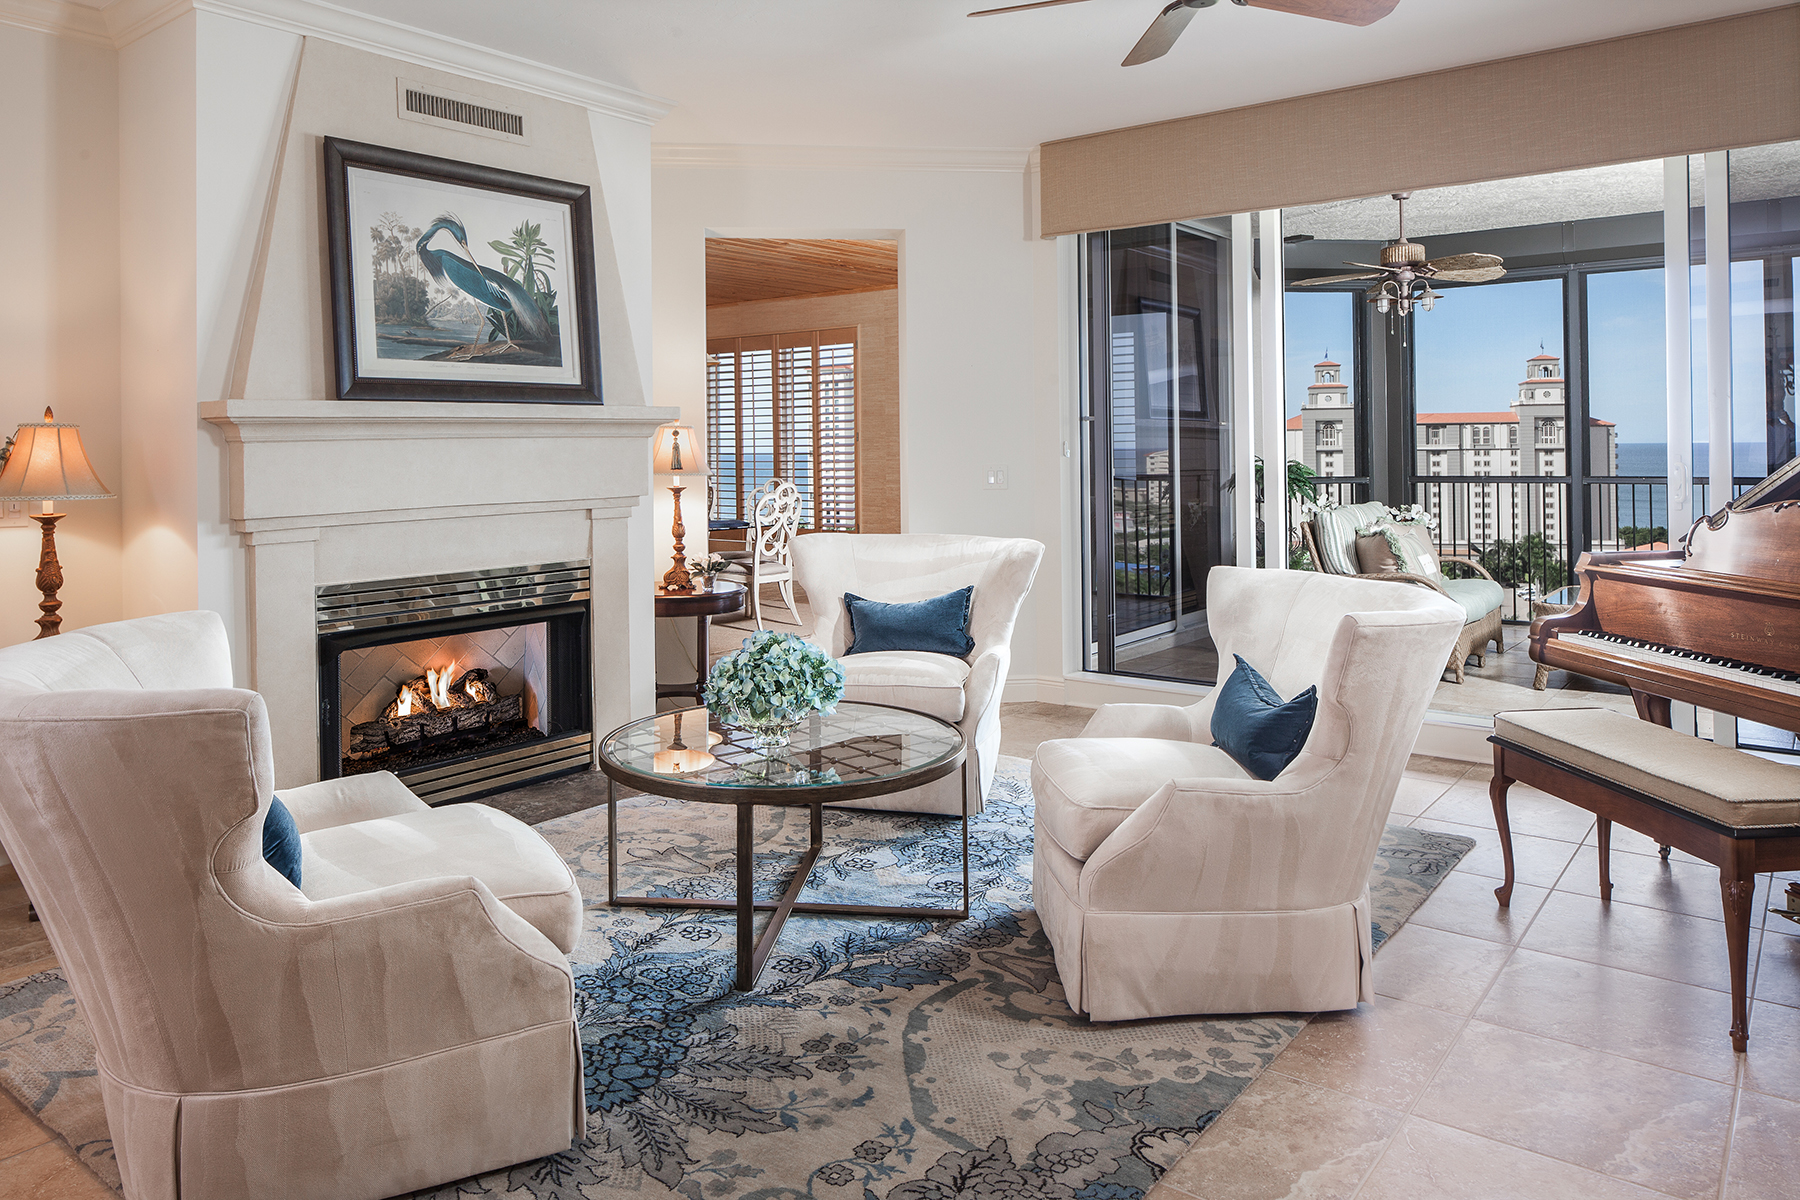 Condominium for Sale at PELICAN BAY - TRISTE AT BAY COLONY 8787 Bay Colony Dr 1404 Naples, Florida, 34108 United States